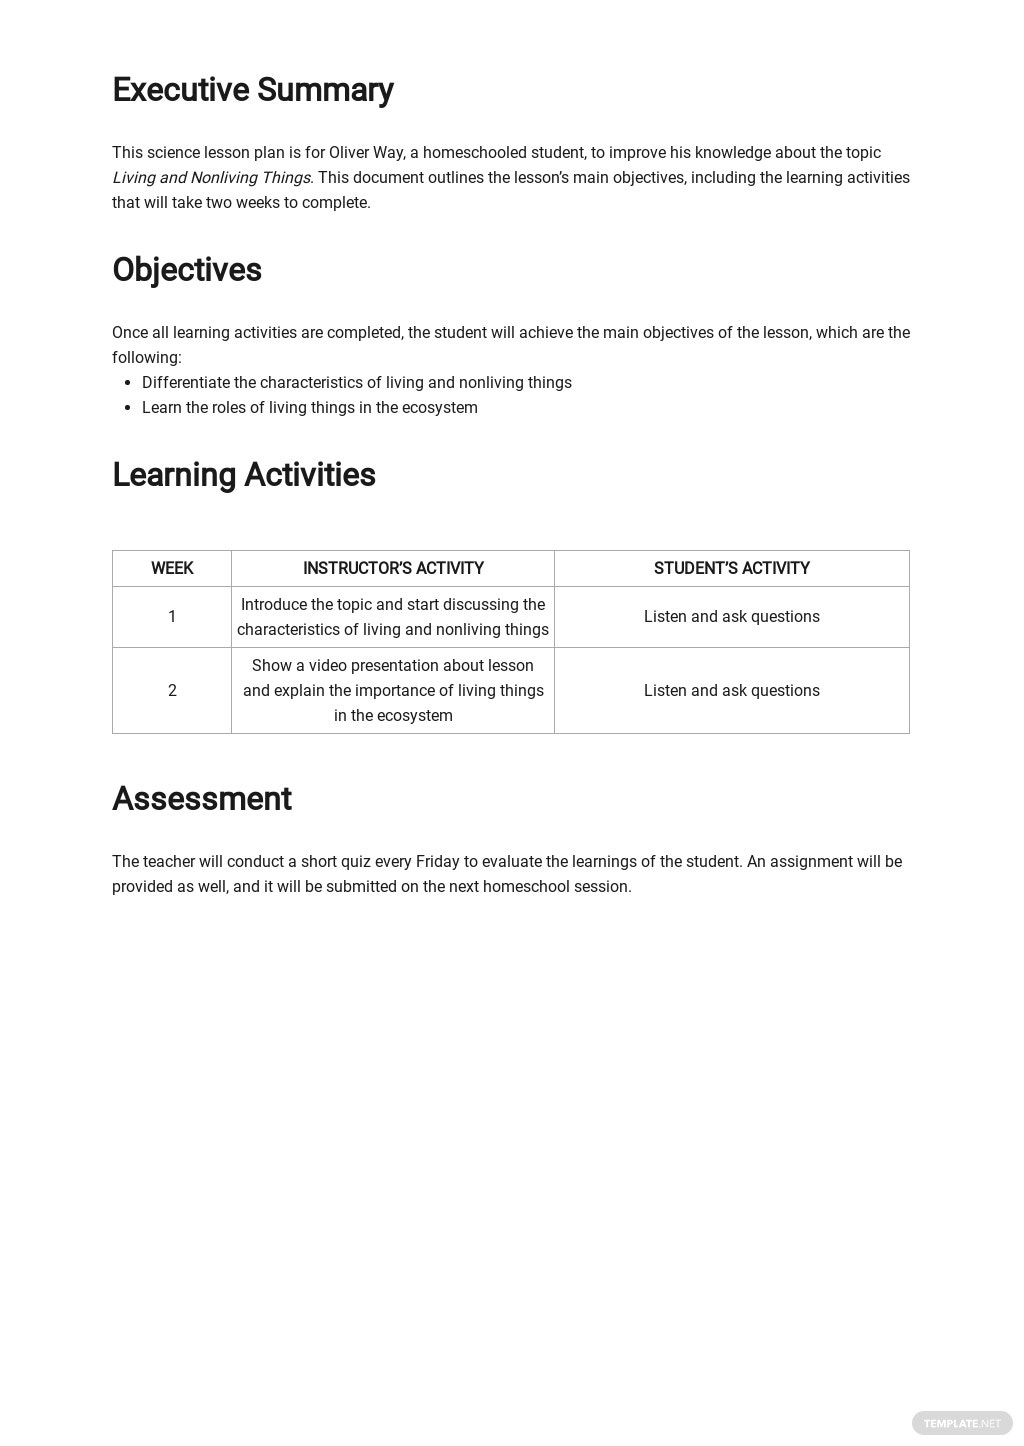 Homeschool Daily Student Lesson Plan Template 1.jpe